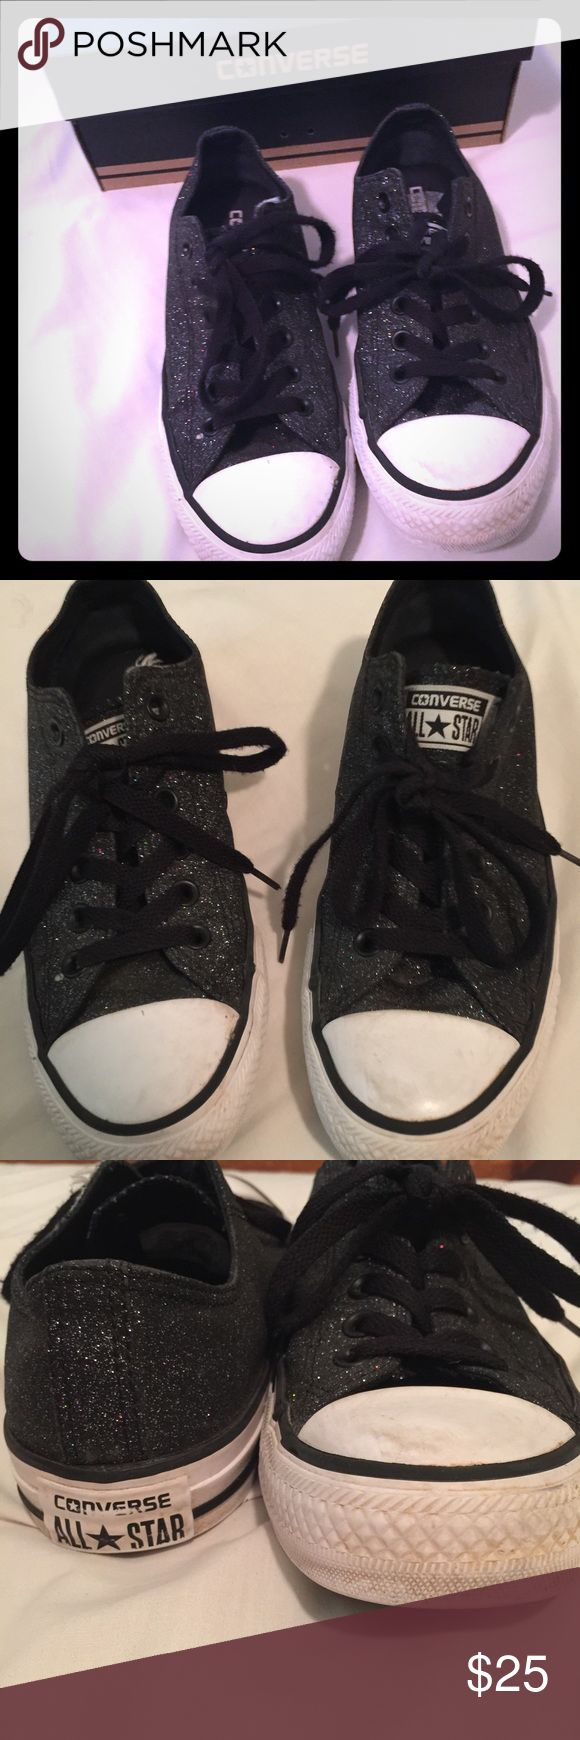 Black glitter converse All Star Black Glitter Converse. They are still in good condition. A few scuff marks and discoloration on the white tips. Perfect shoes to dress up any outfit. Comes with original box. Make an offer. Converse Shoes Sneakers